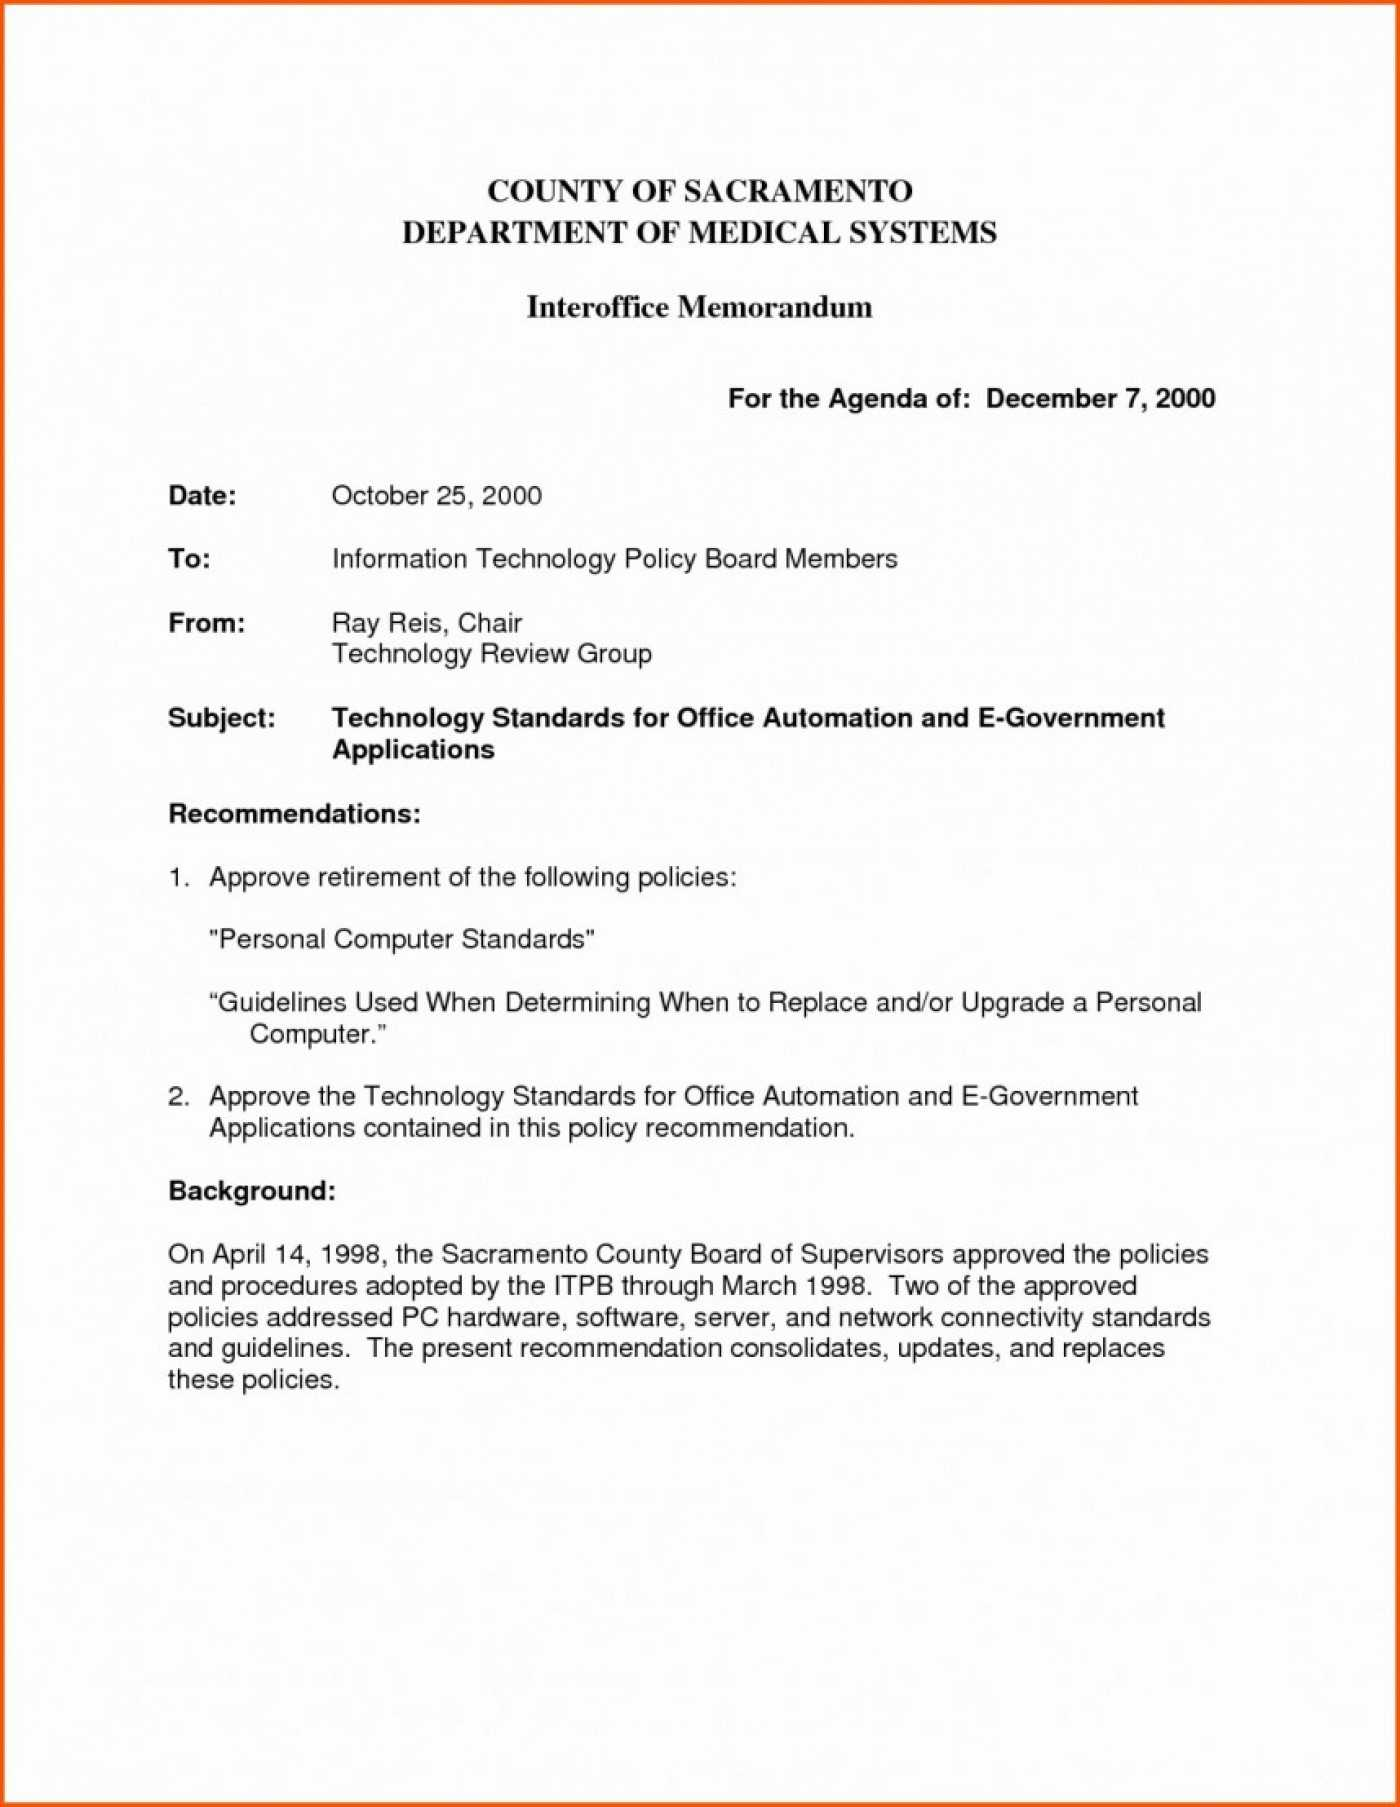 002 Memo Templates For Word Business Format Microsoft With Regard To Memo Template Word 2013